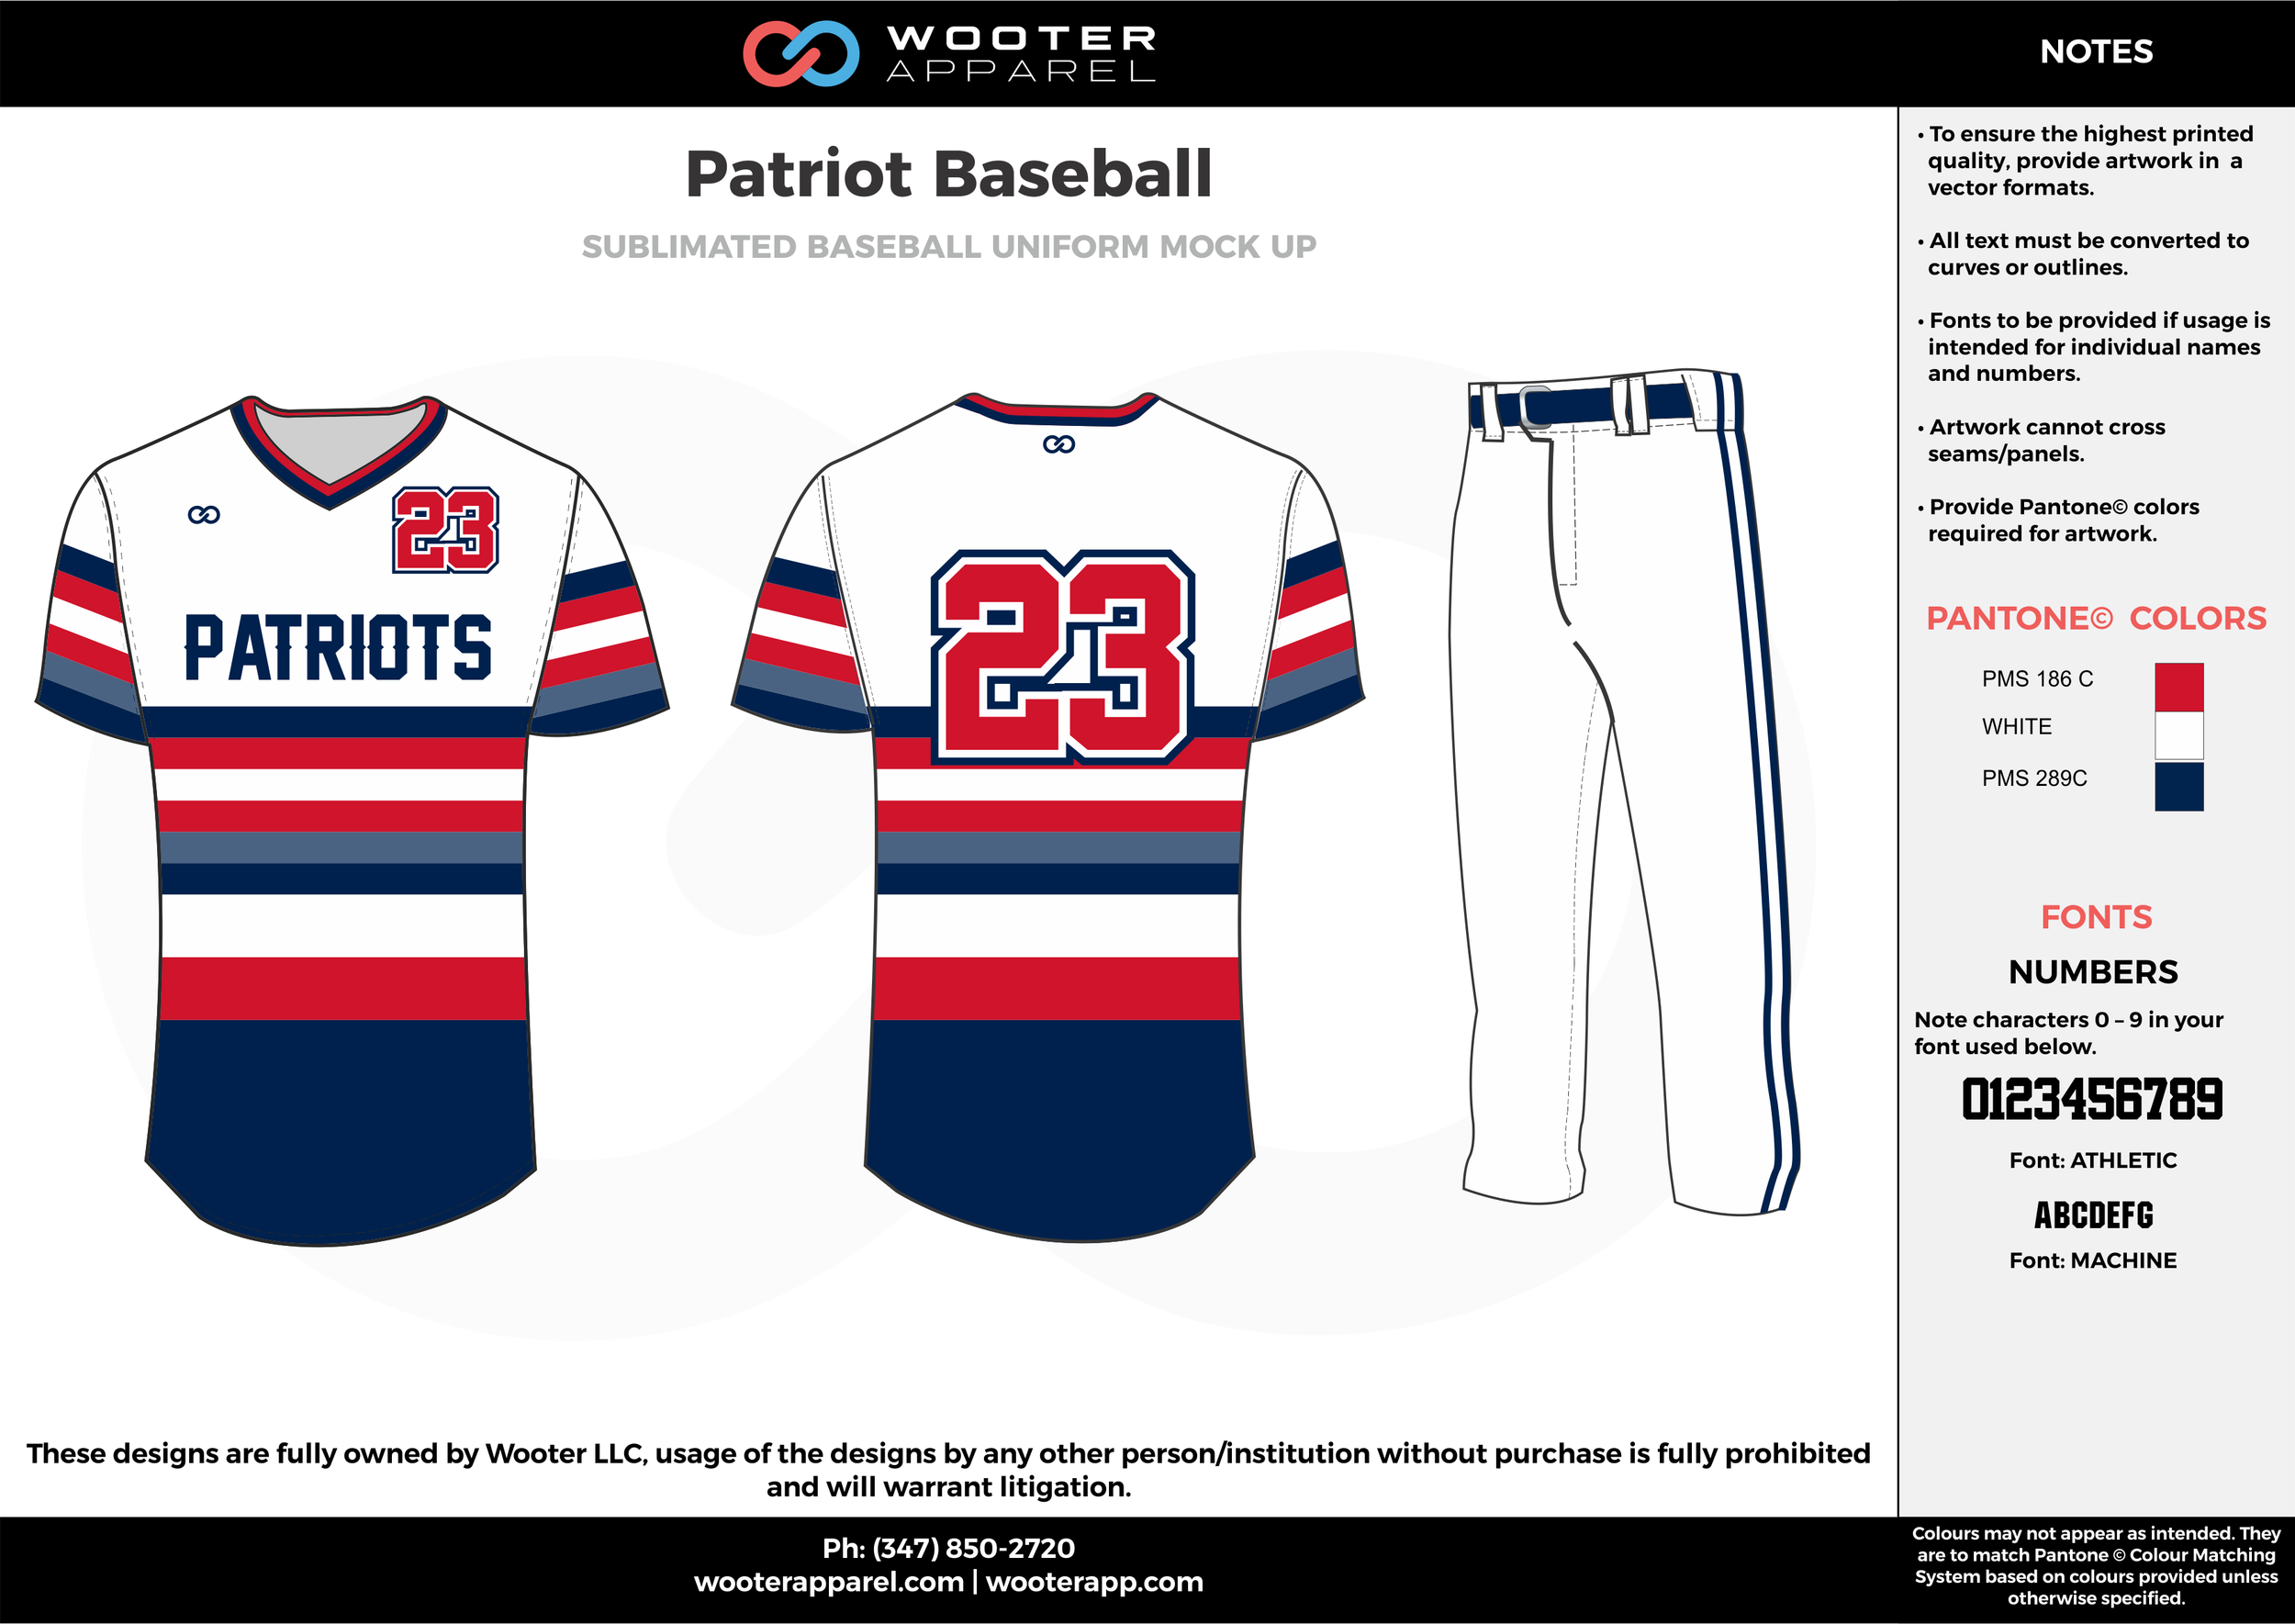 PATRIOT BASEBALL white red dark blue baseball uniforms jerseys pants